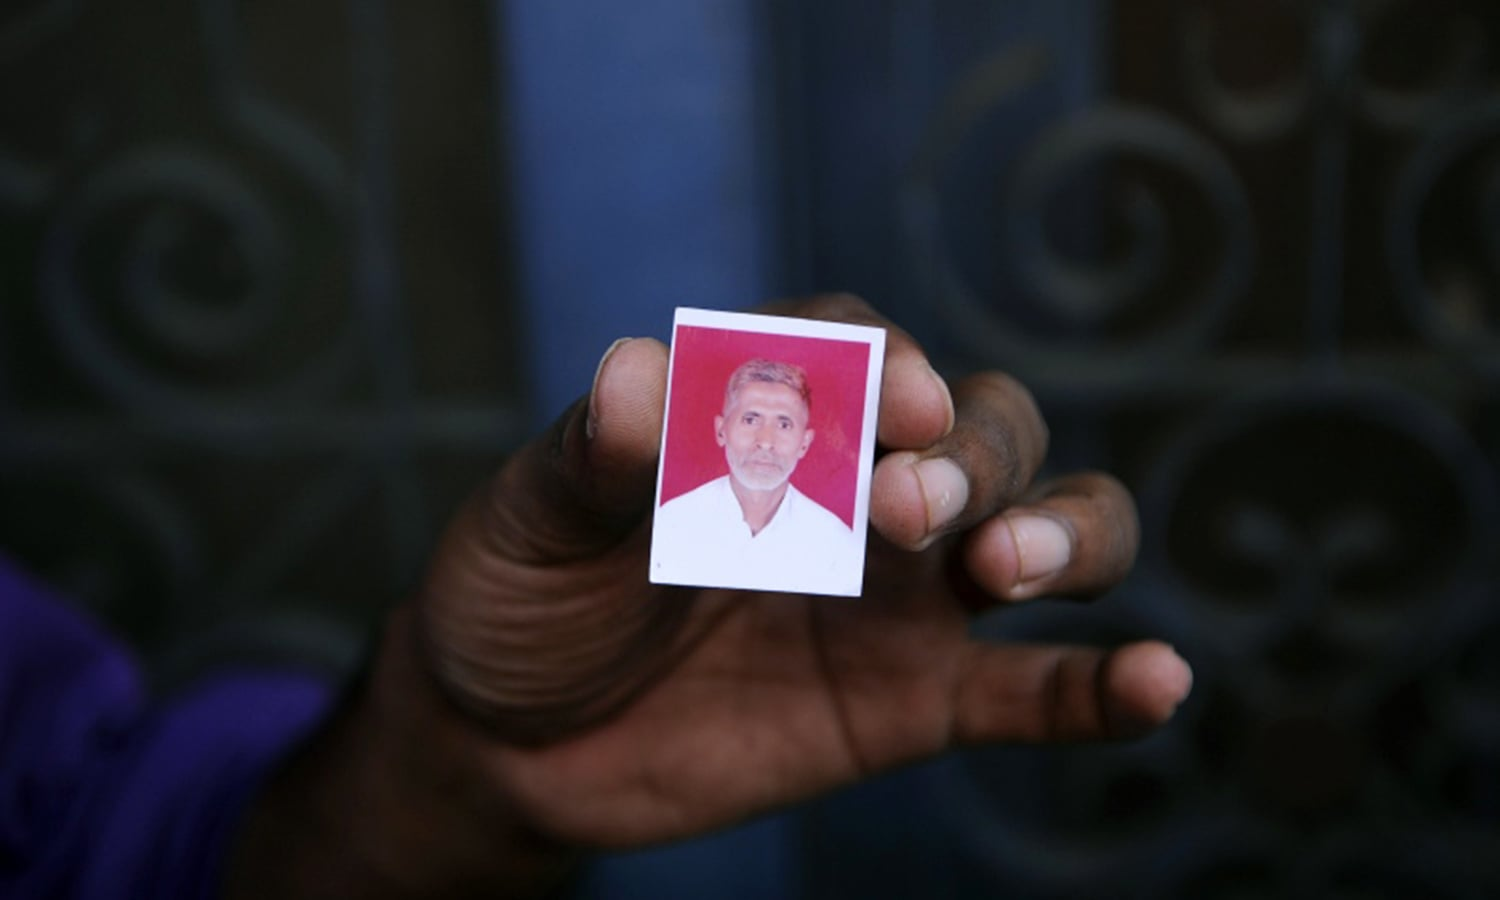 A relative holds a photograph of Mohammad Akhlaq in the village of Bisada near Delhi. Akhlaq was lynched by a mob in September 2015 after rumours that he had eaten beef. (Photo credit: AFP)